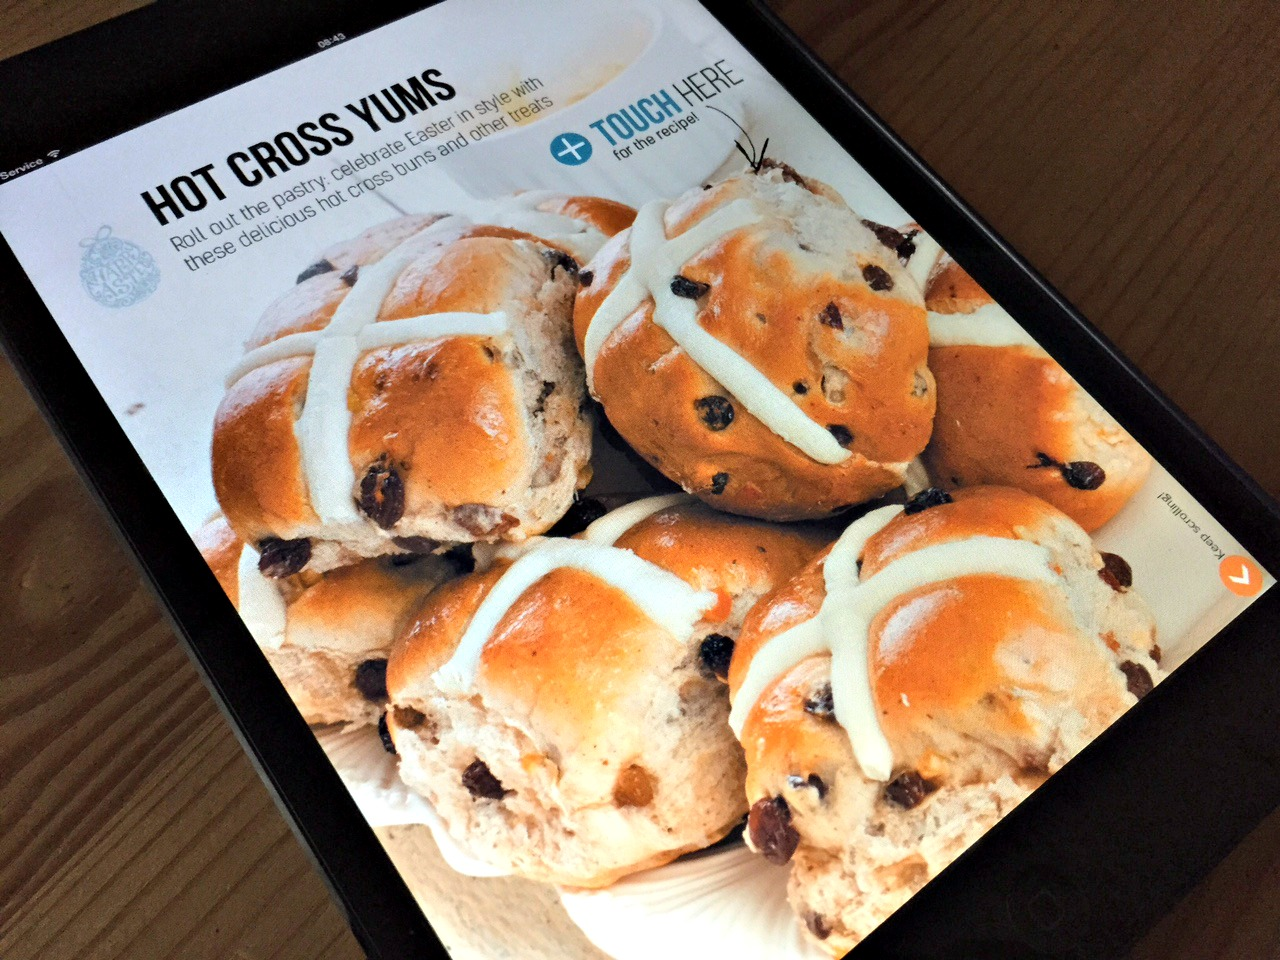 Vegan Life Recipe - Hot Cross Buns